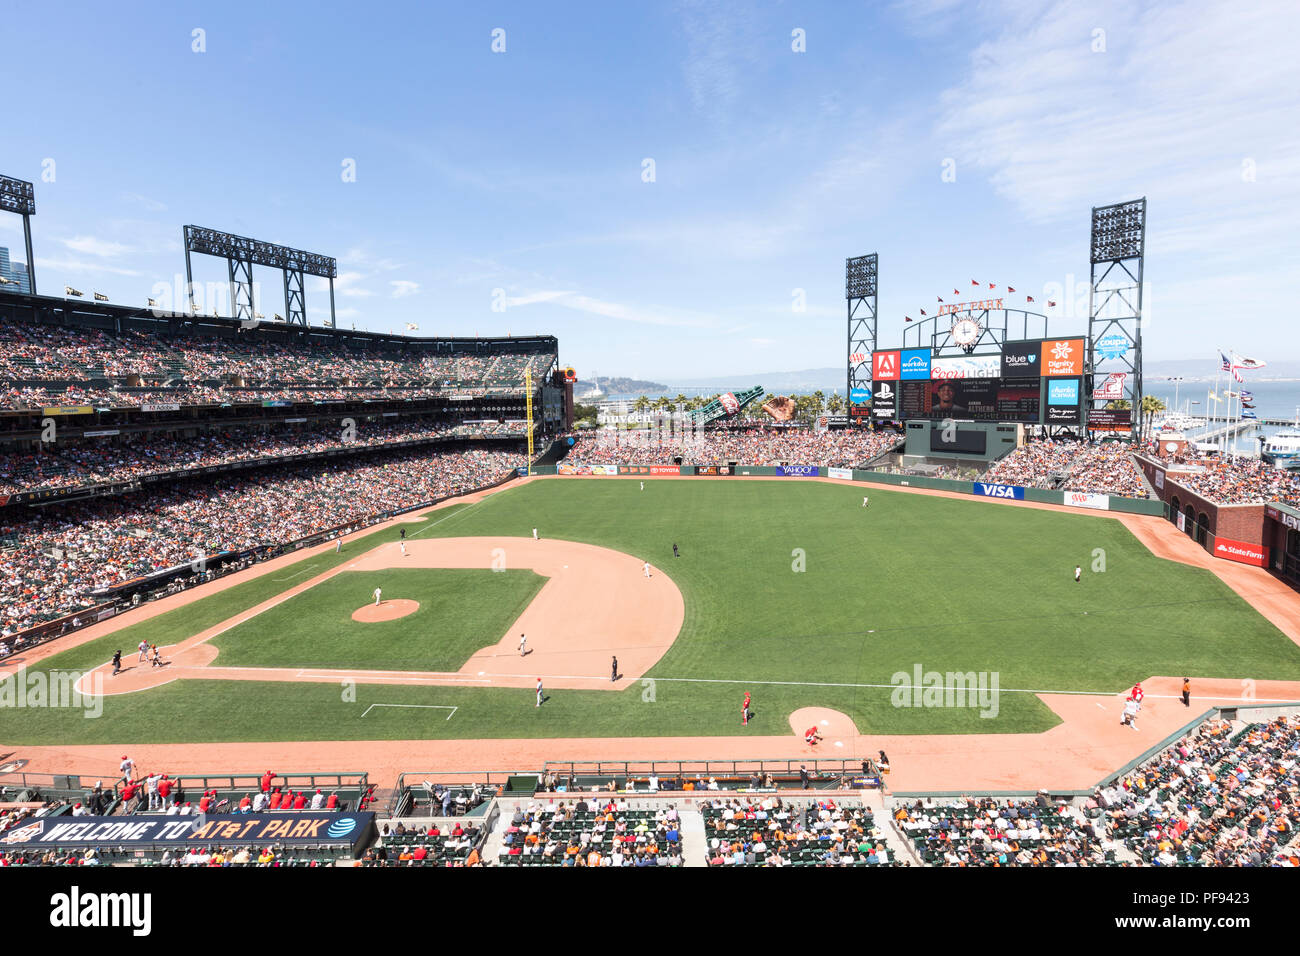 AT&T Park baseball stadium , San Fransisco , USA, home of the San Francisco Giants, the city's Major League Baseball franchise. - Stock Image